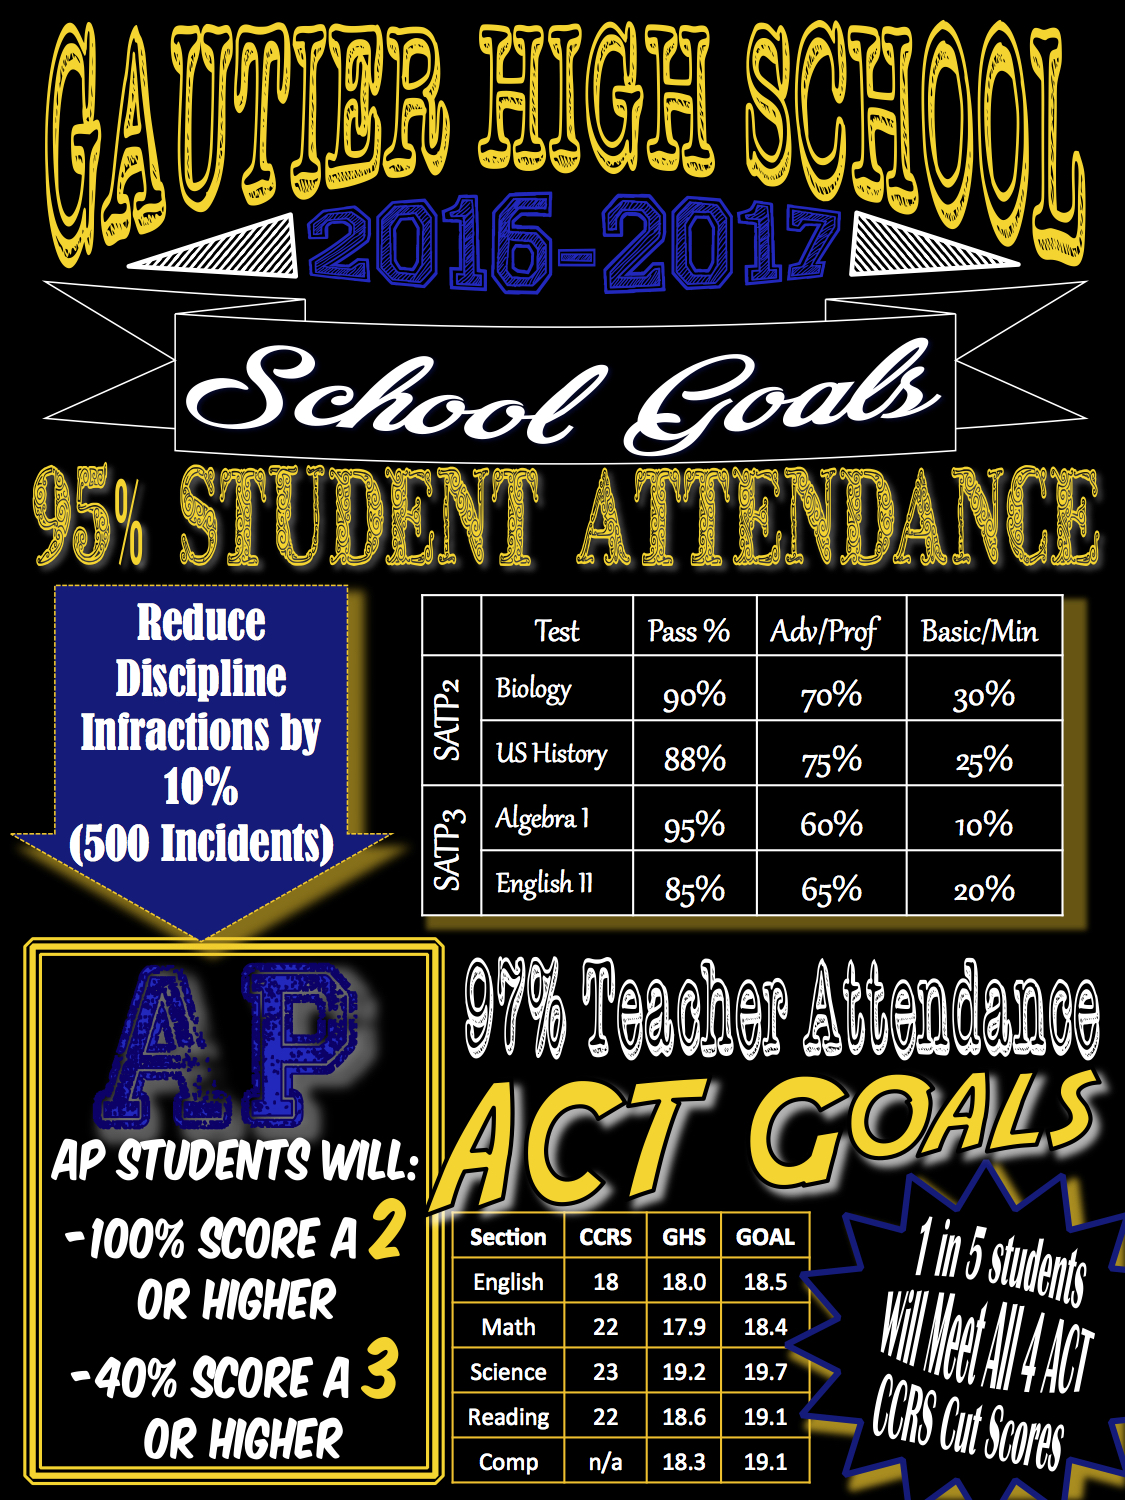 GHS Goals 2016-2017 Blue and Gold Updated.jpg